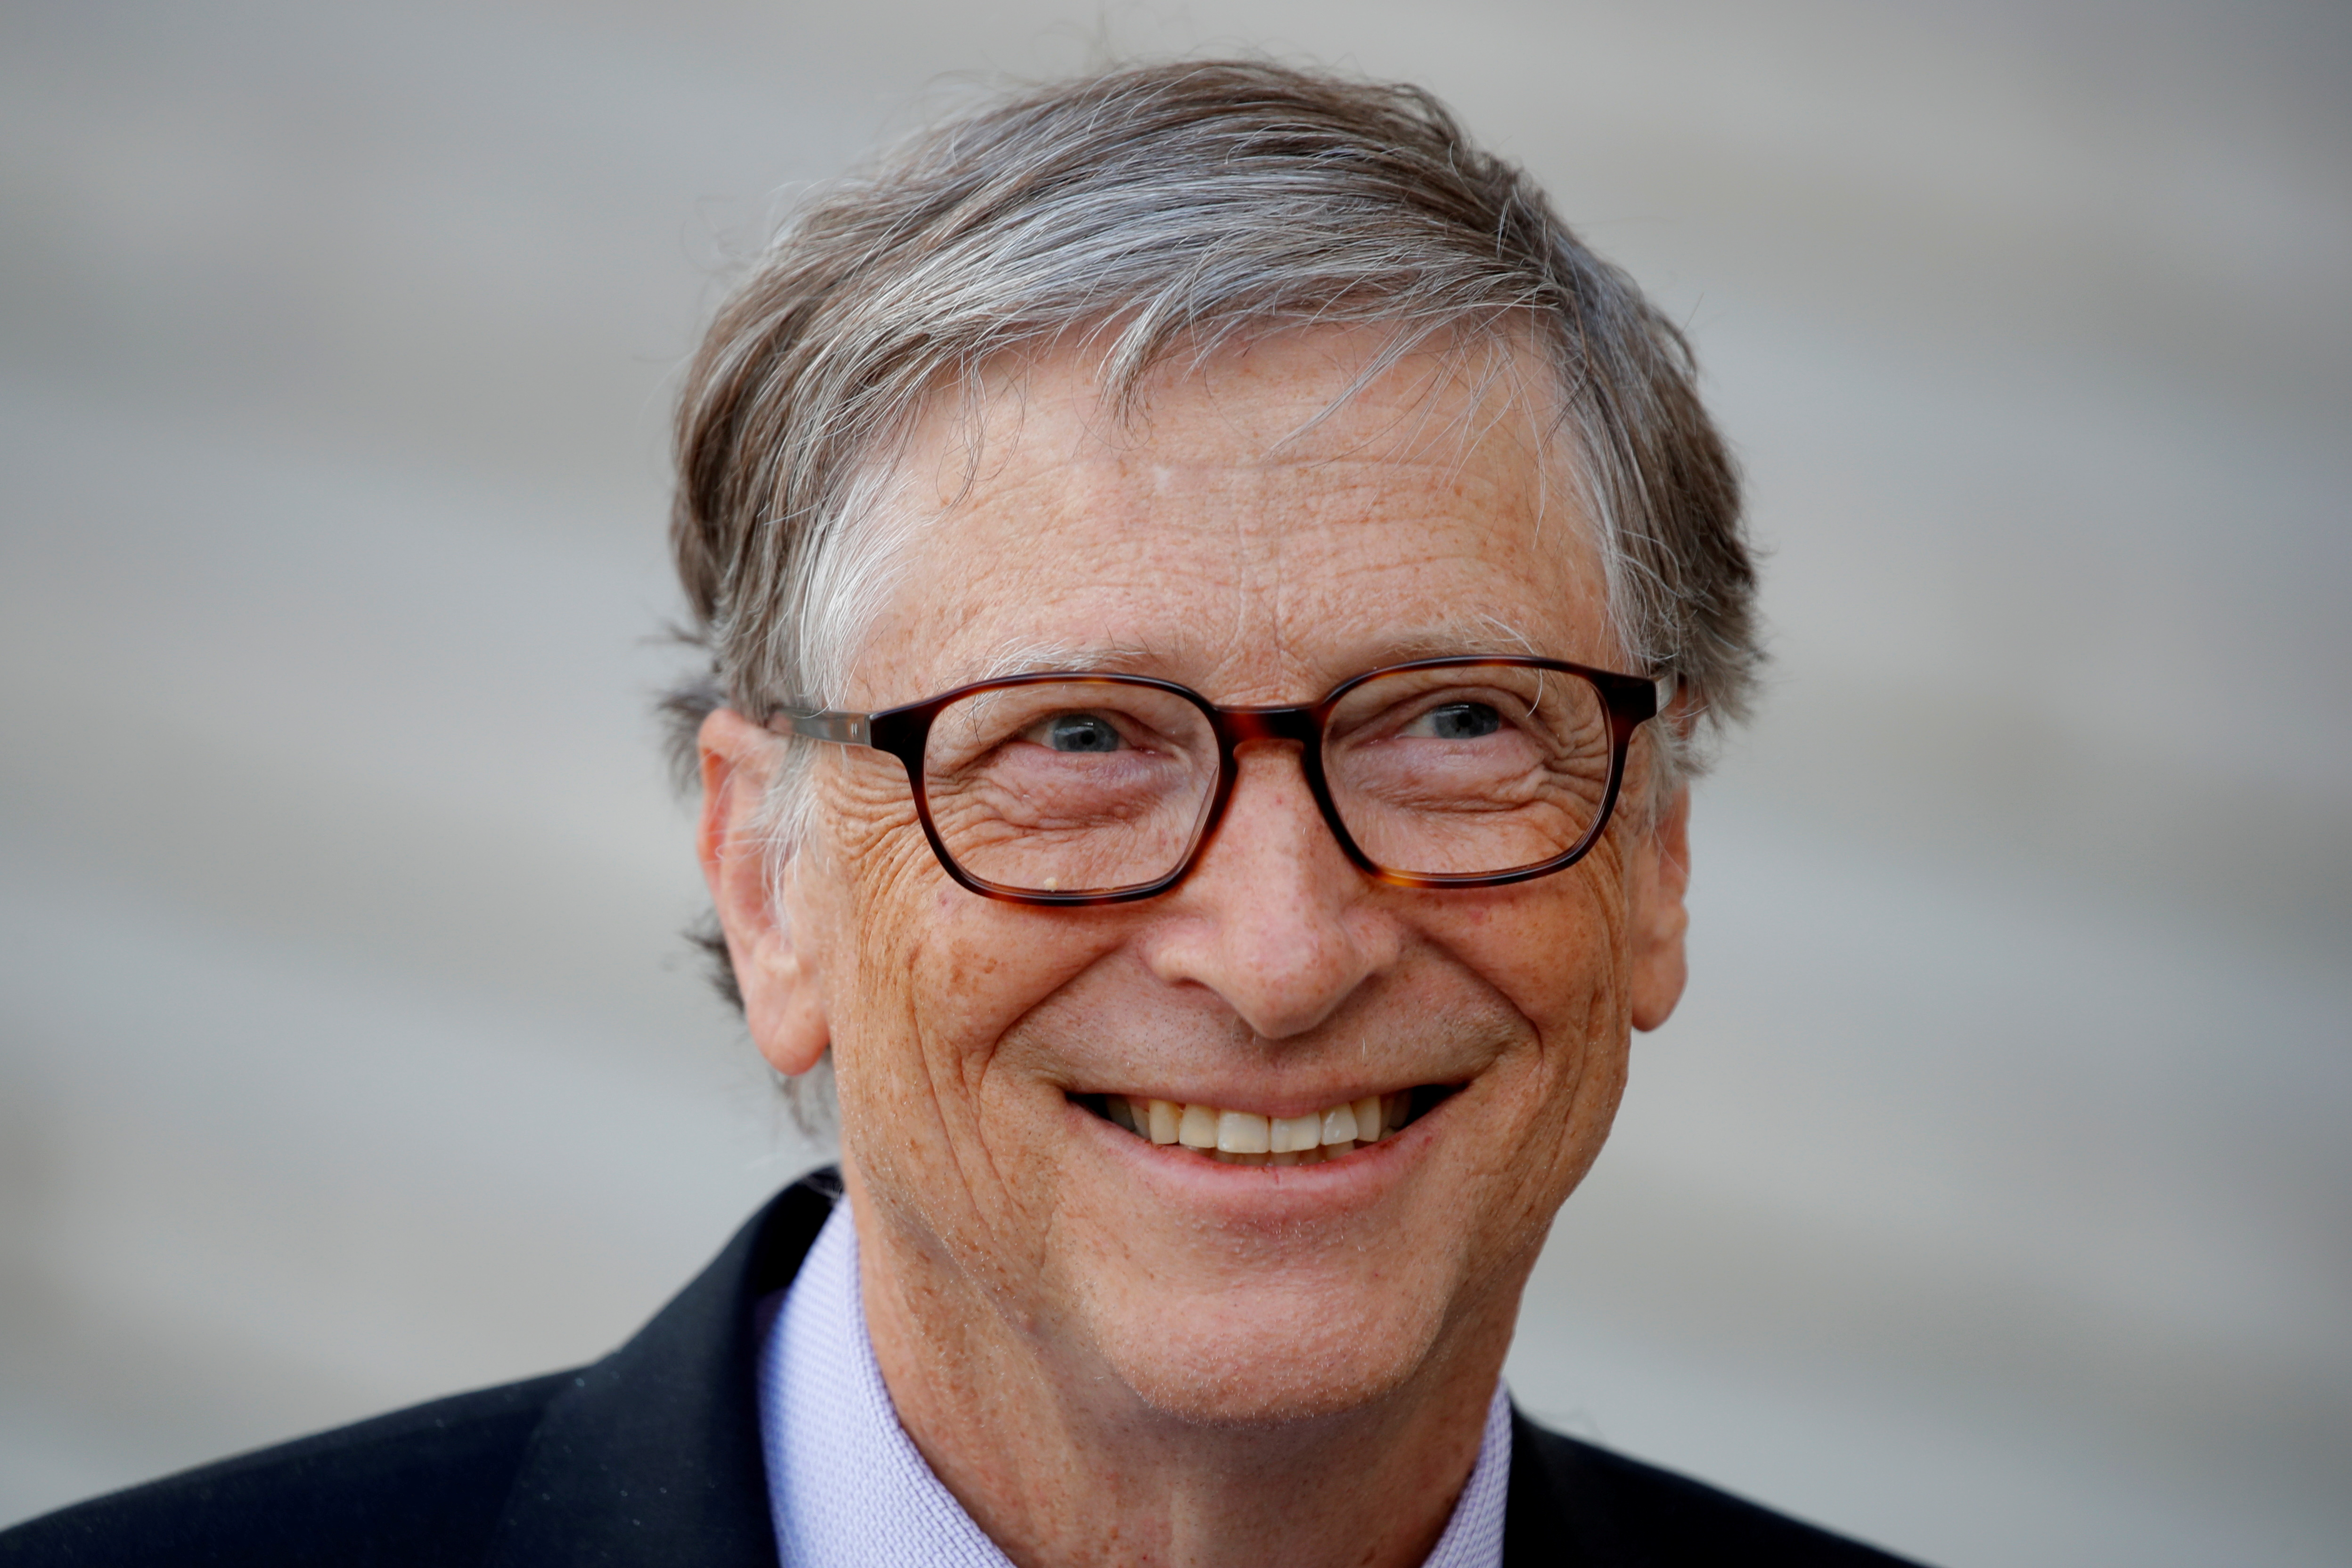 Bill Gates, Co-Chair of Bill & Melinda Gates Foundation leaves the Elysee Palace in Paris, France, April 16, 2018. REUTERS/Charles Platiau/File Photo